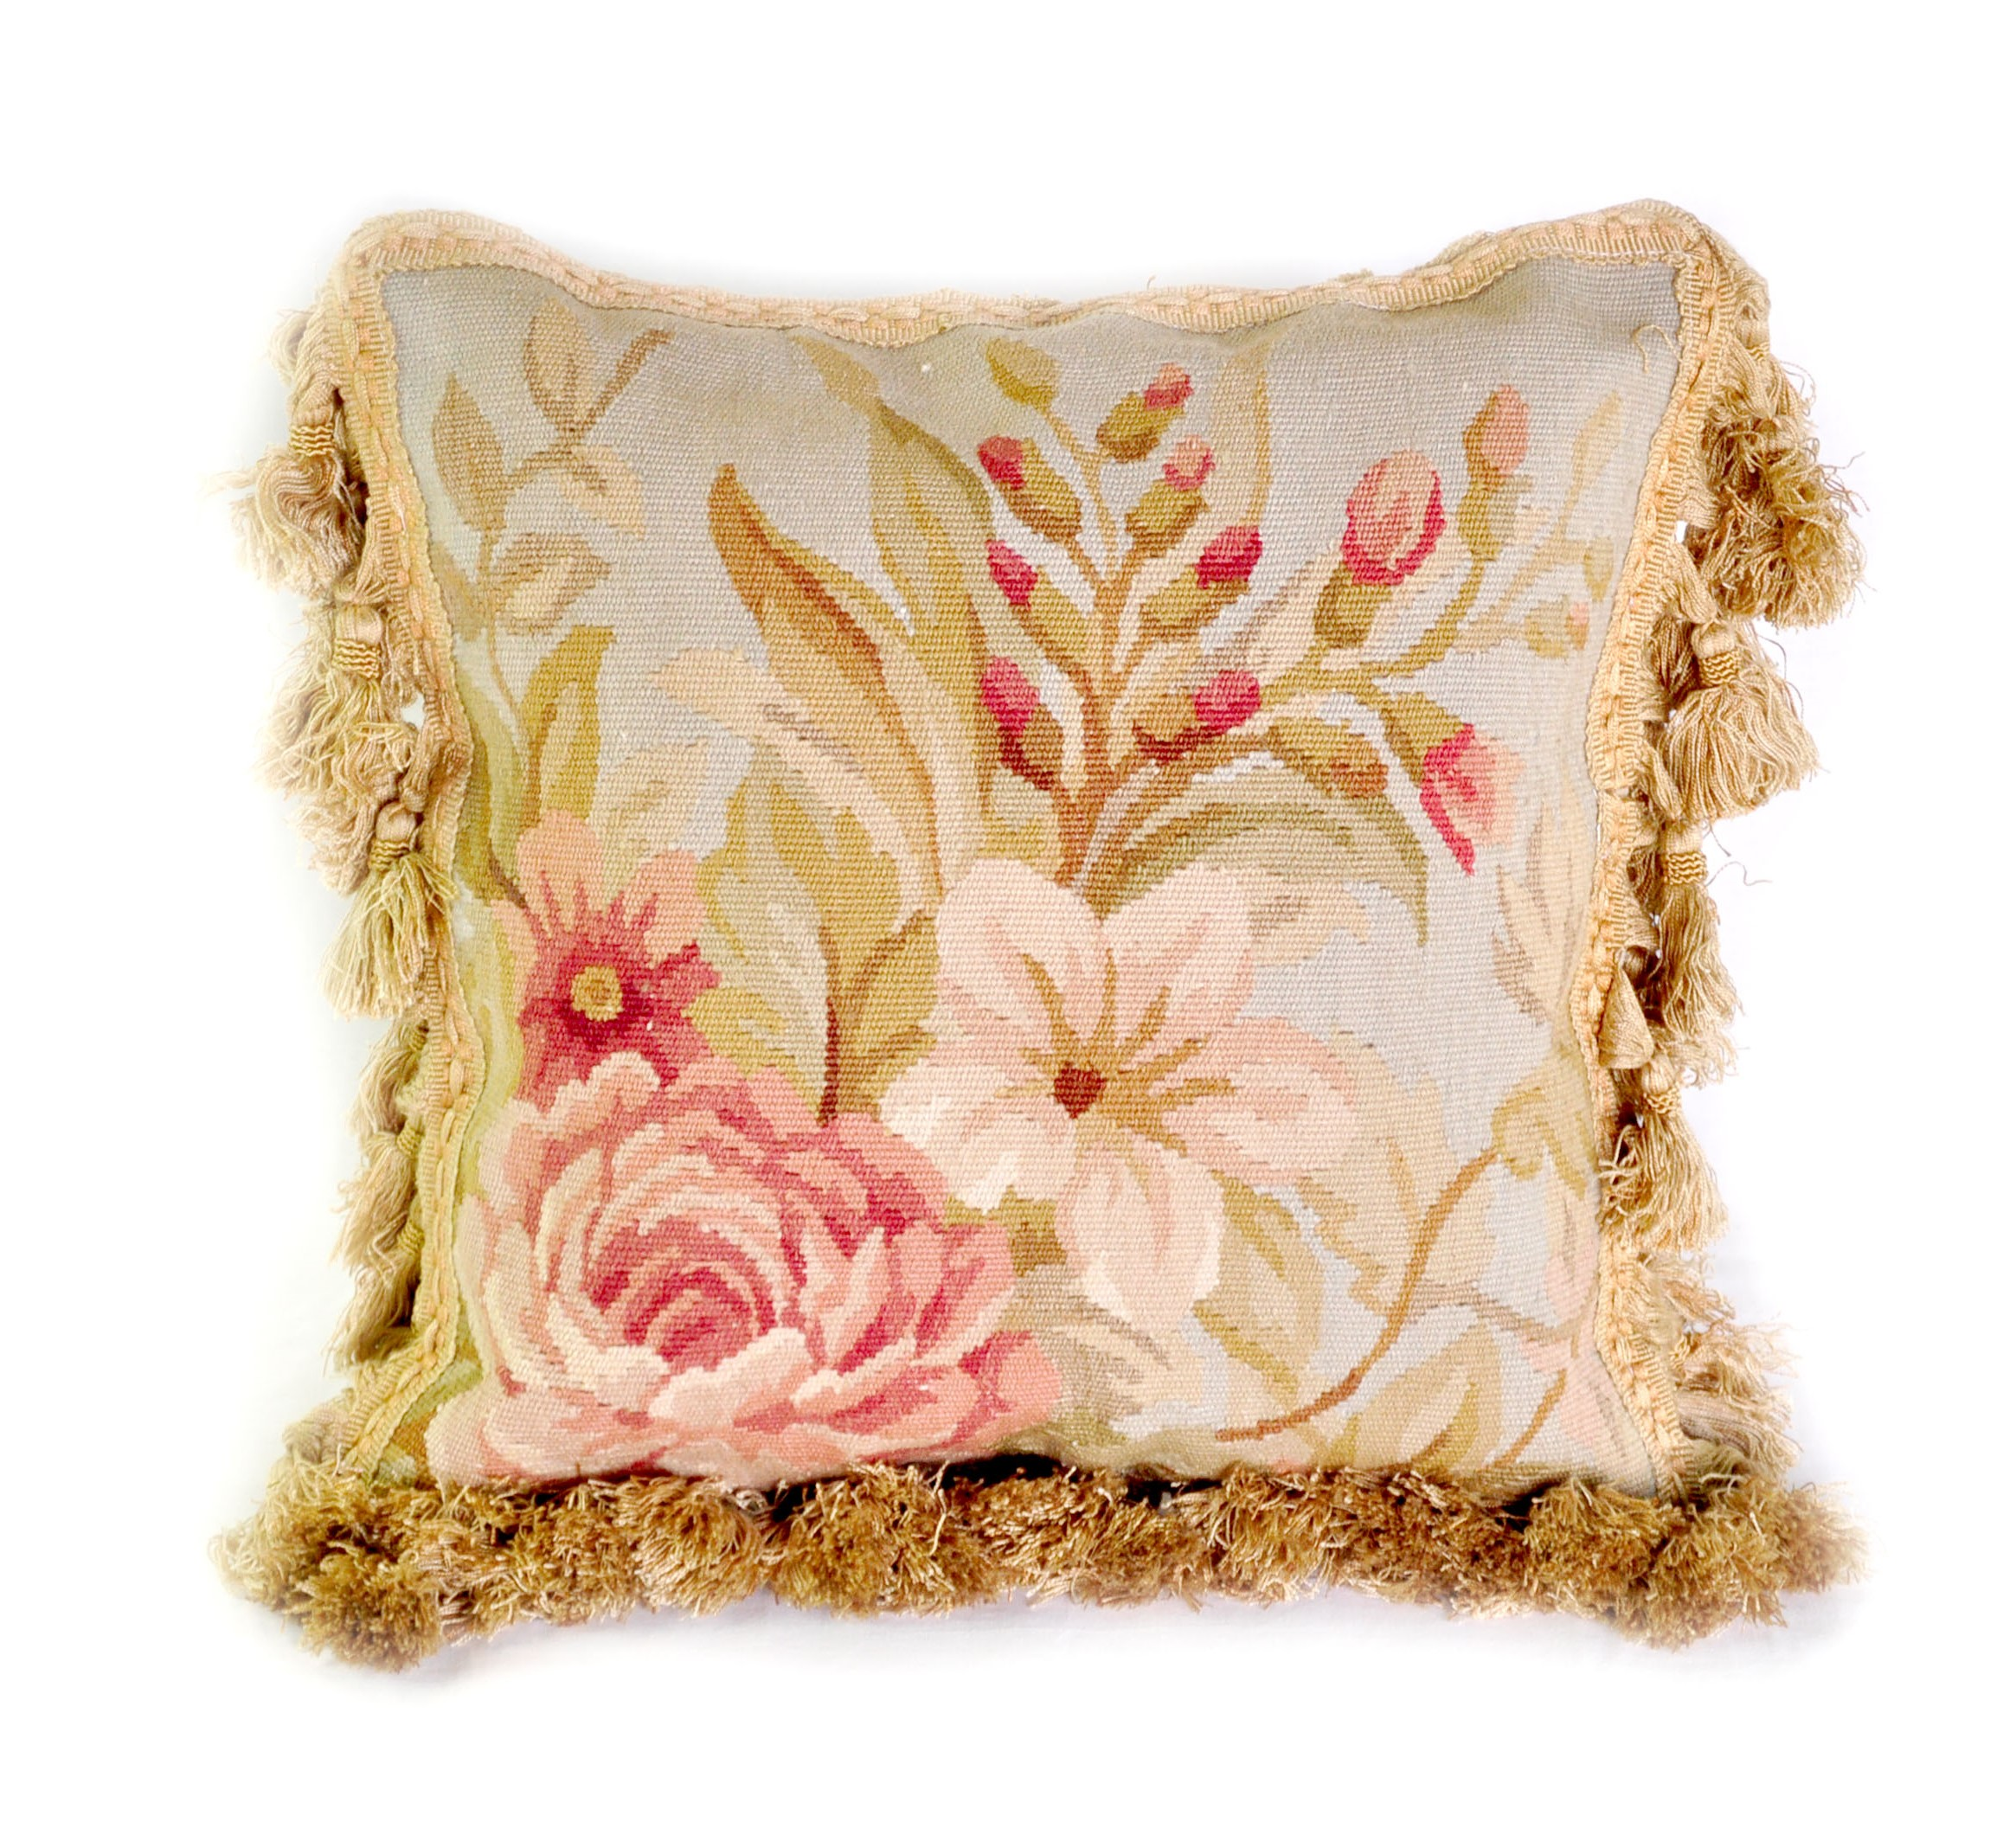 12×12 Handmade French Gobelin Tapestry Weave Wool Aubusson Cushion Cover Pillow Case 12980032